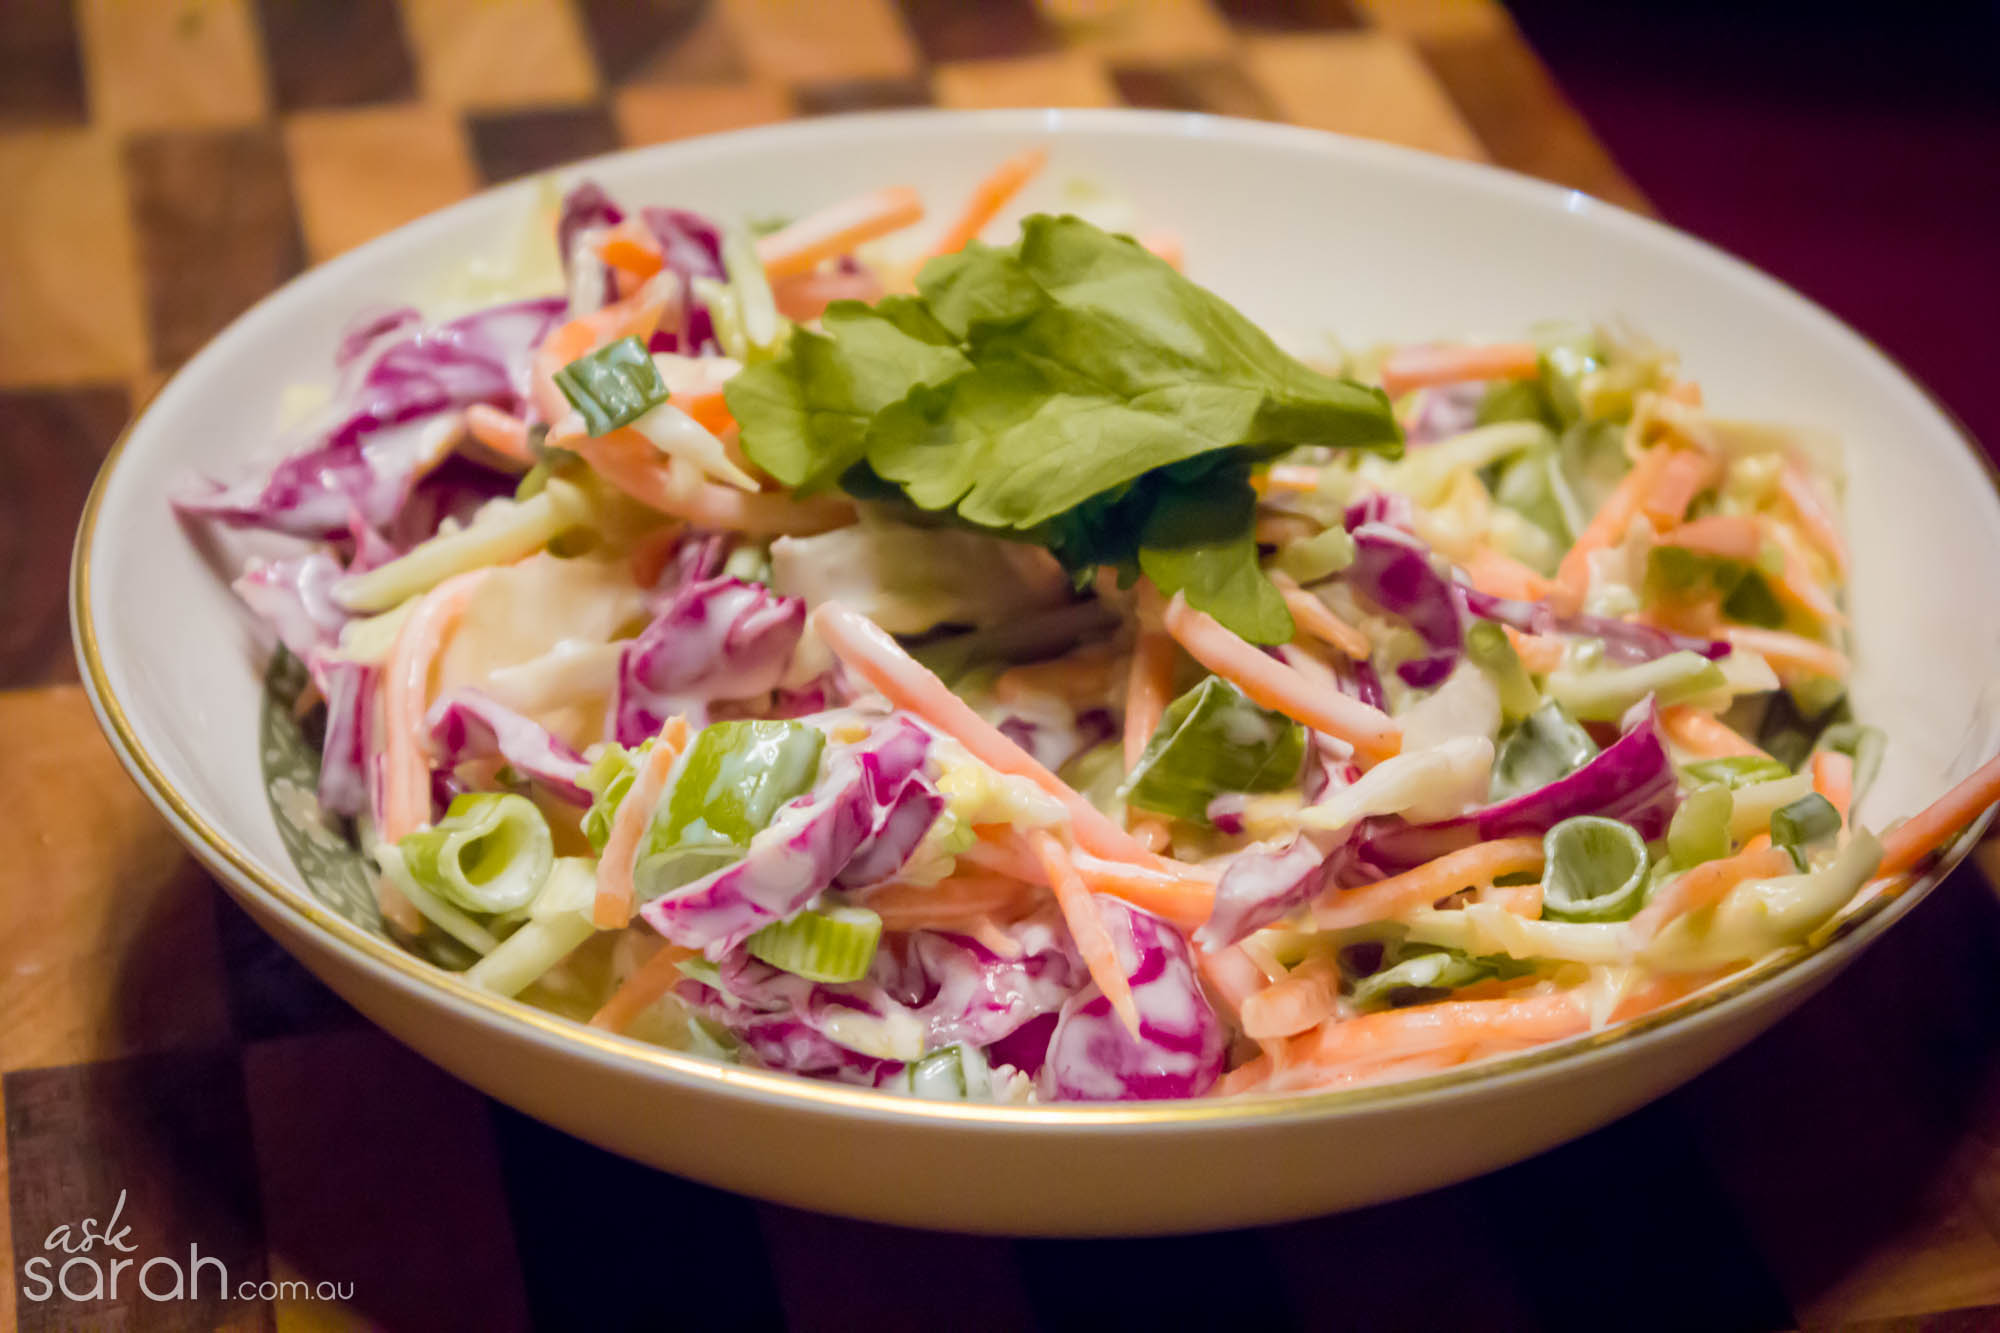 Recipe: Coleslaw with Homemade Dressing